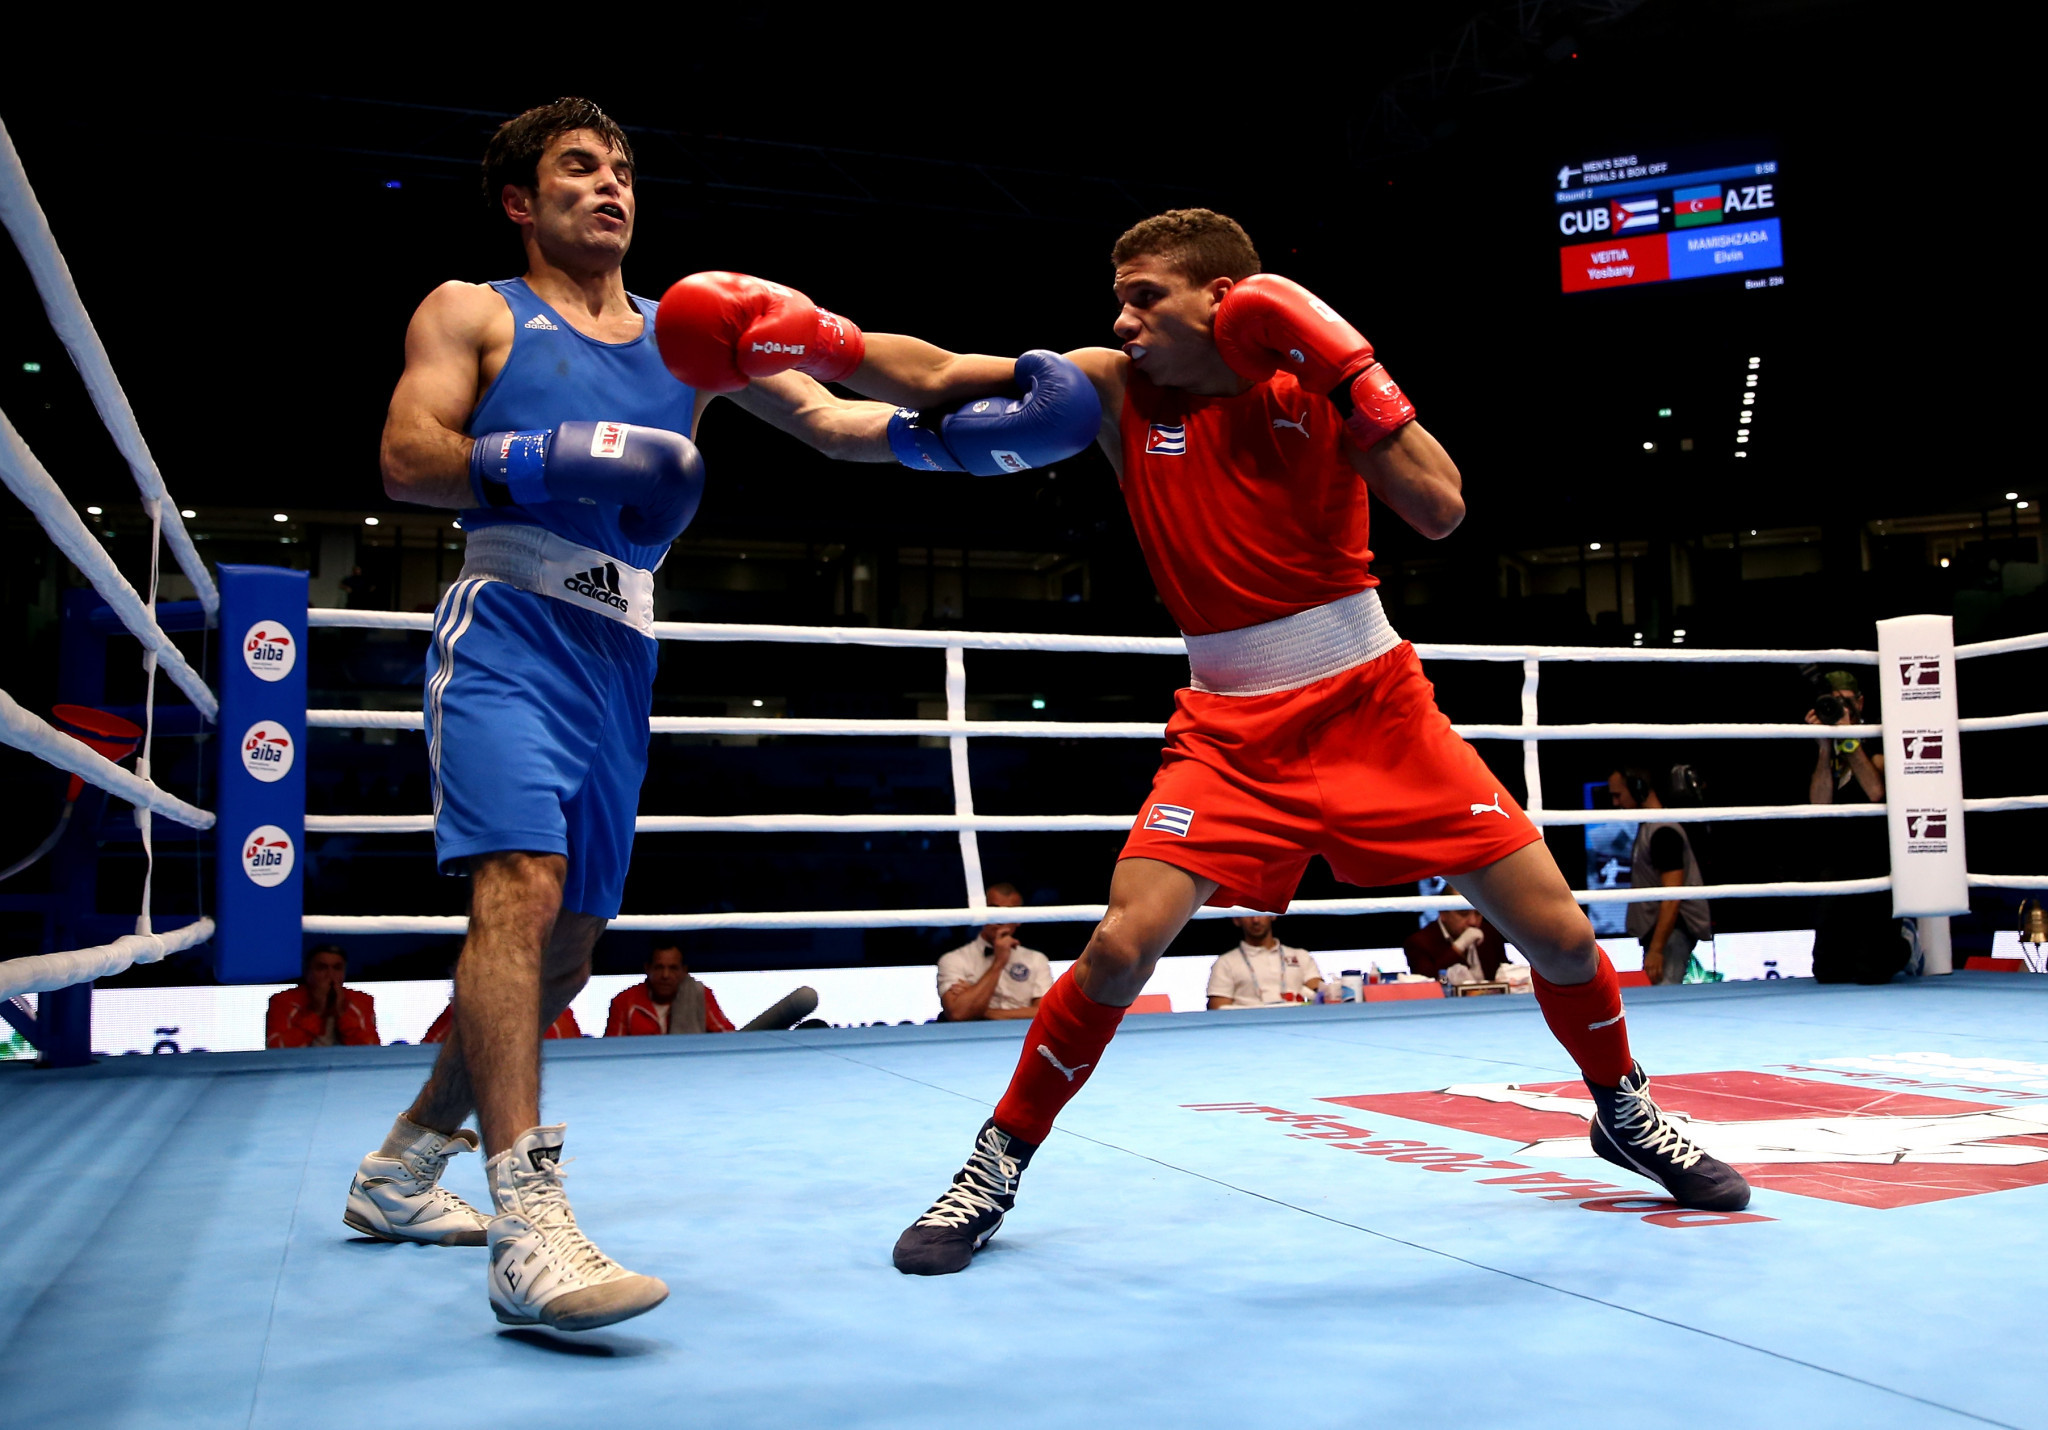 The new cooperation between AIBA and ITA will aim to educate boxers on anti-doping ©AIBA